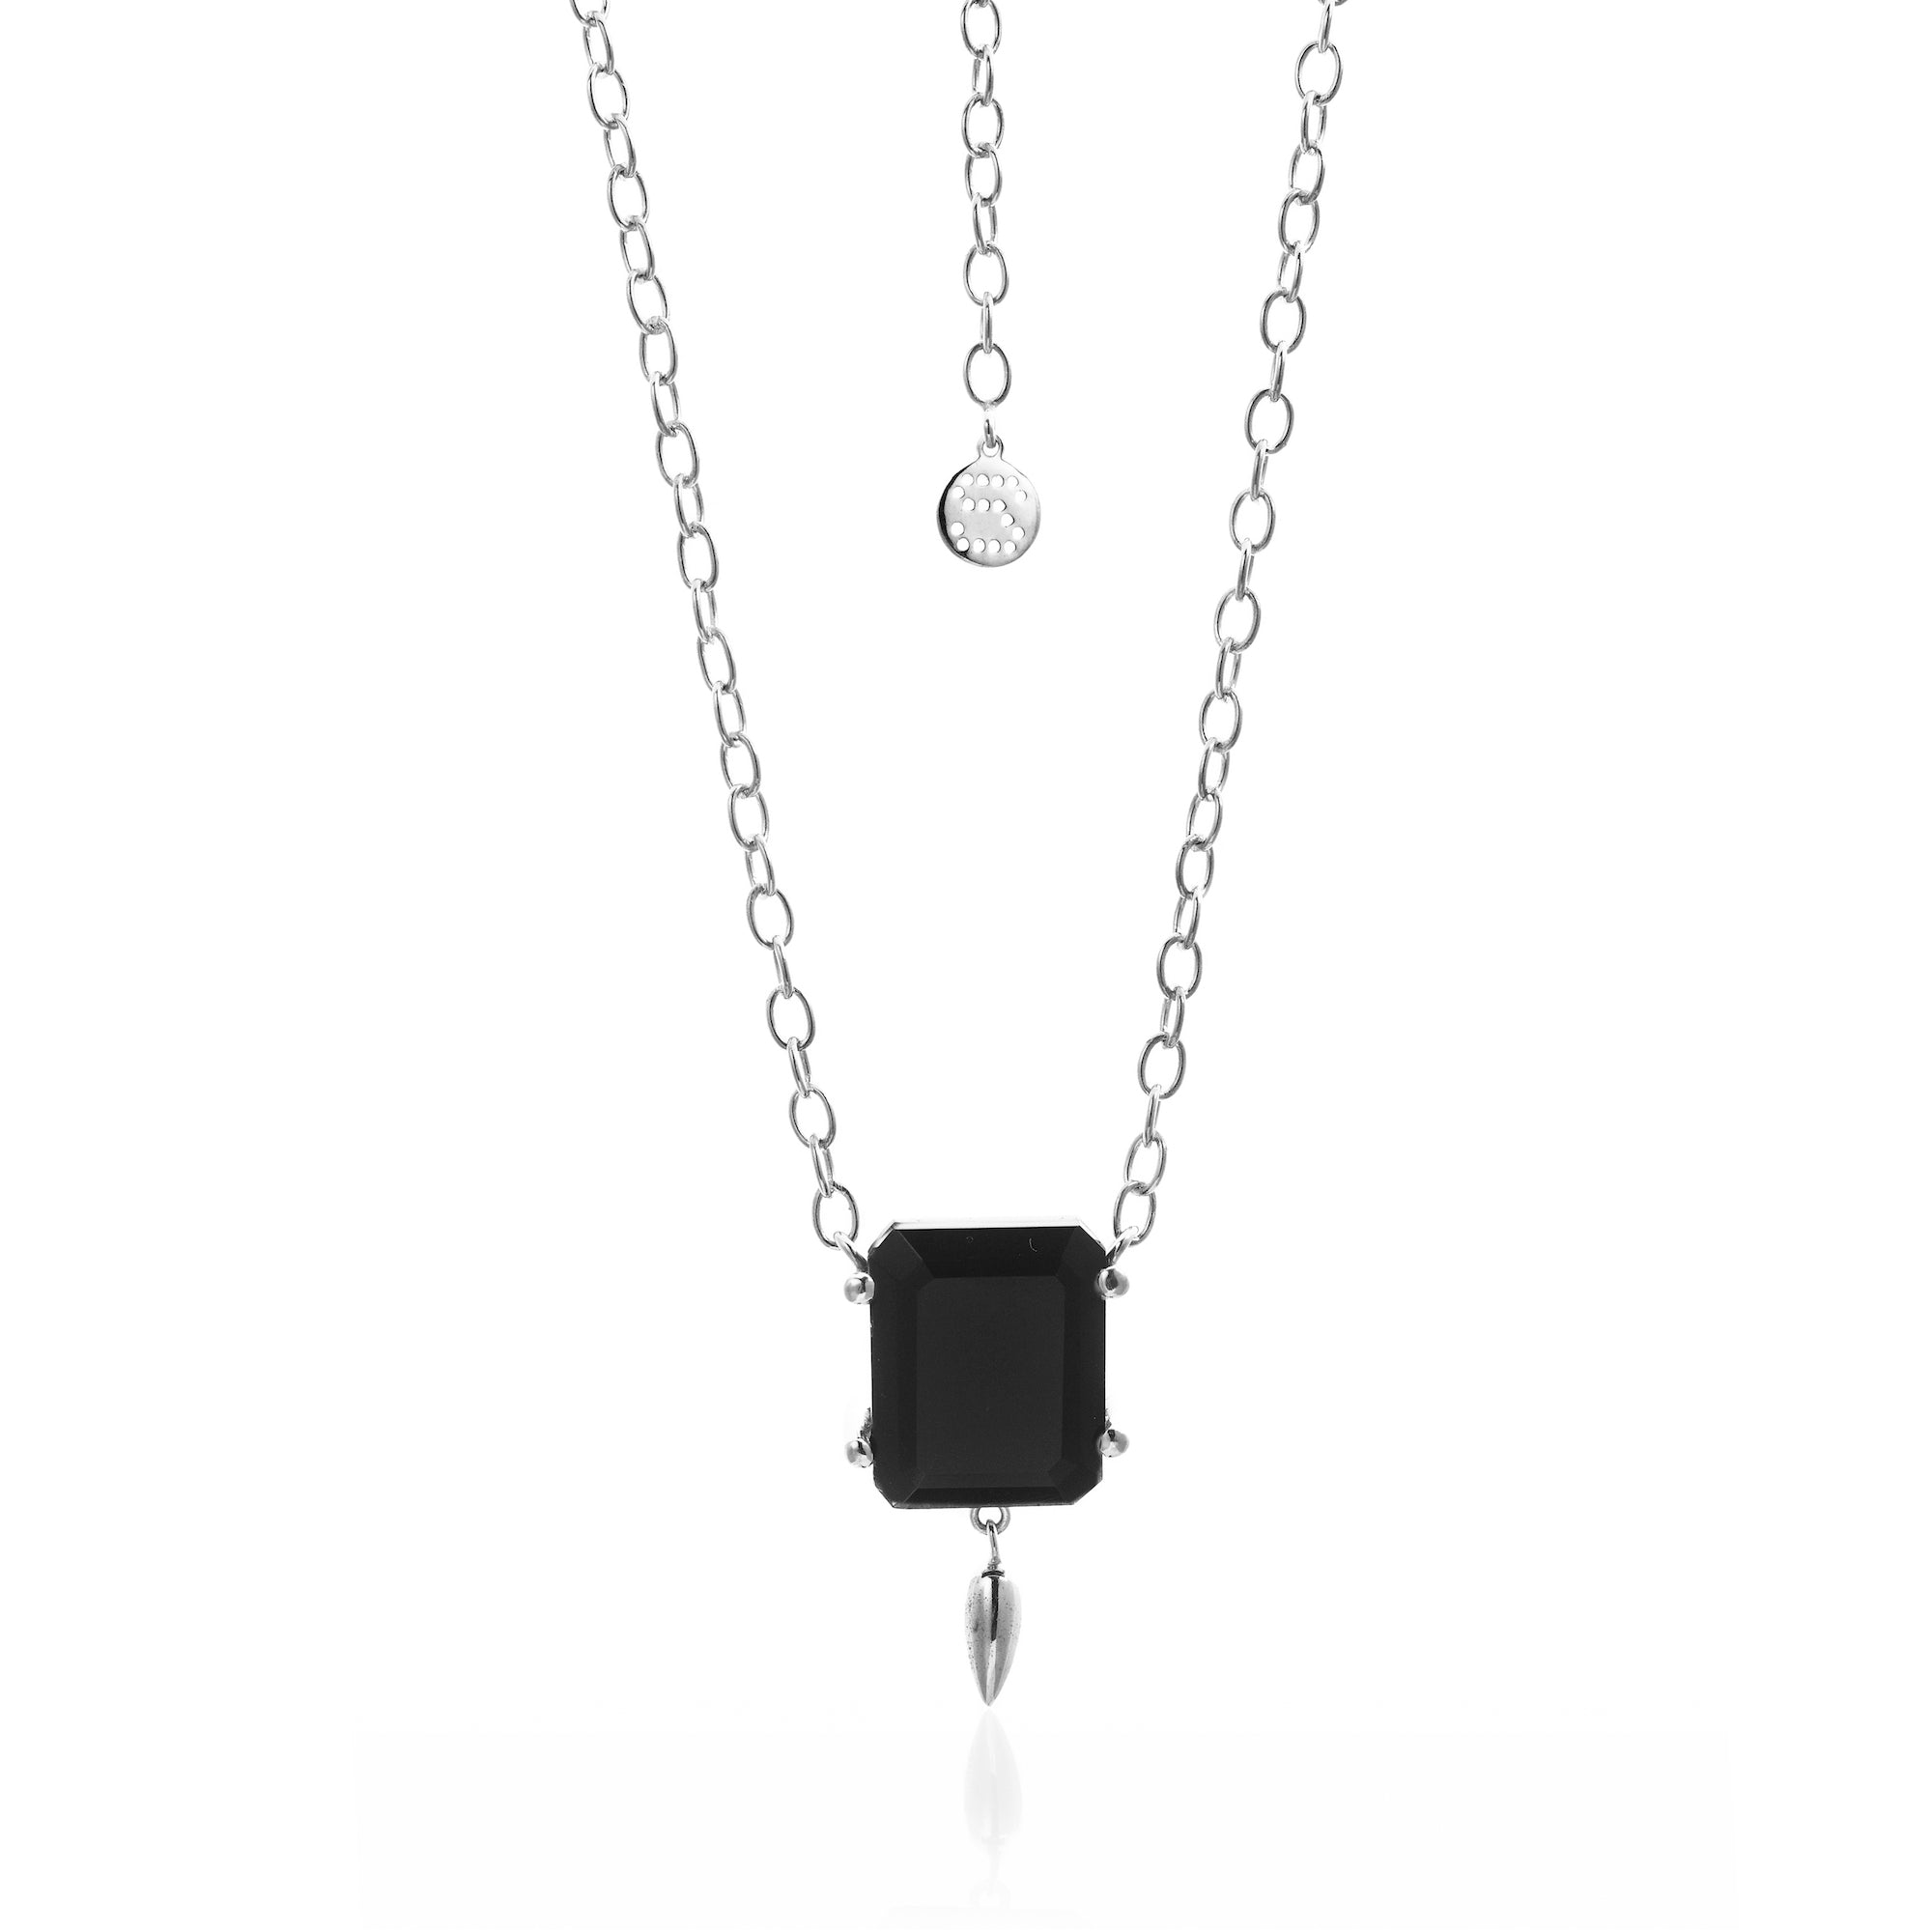 Silk&Steel Jewellery Prima Donna Black Spinel and Silver Necklace from La Dolce Vita Collection